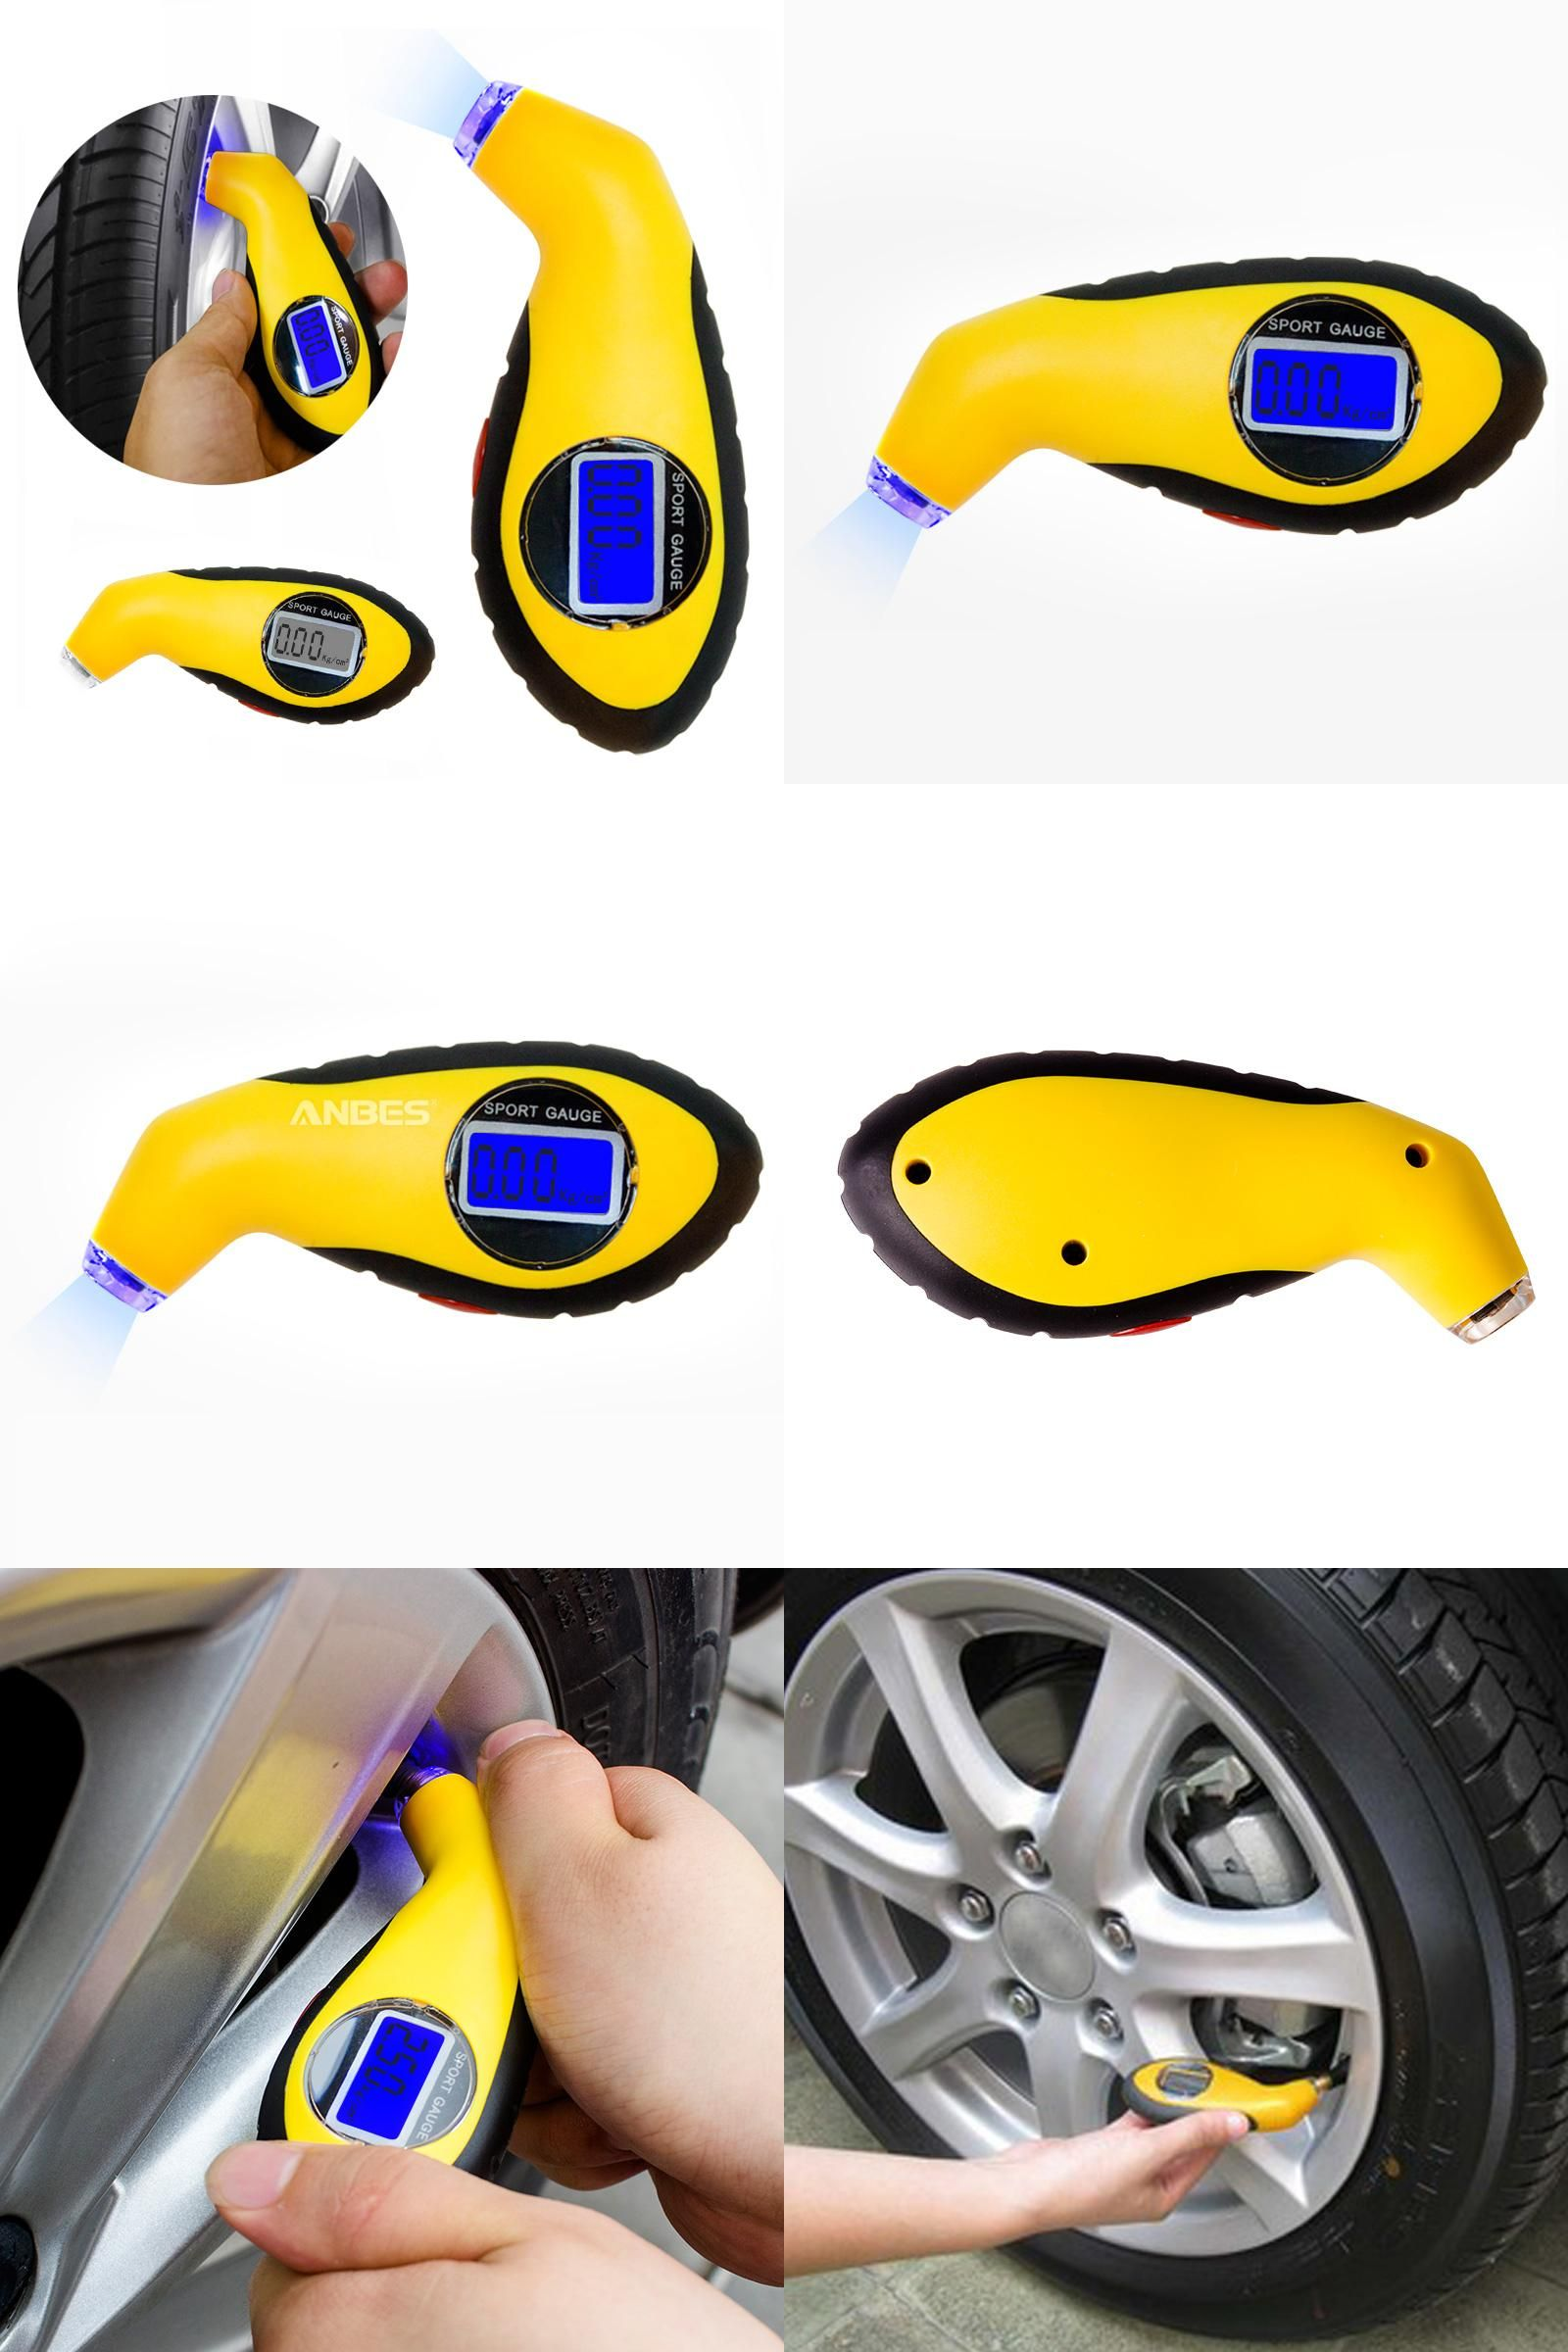 Visit to Buy] Diagnostic Tools tire pressure gauge Meter Manometer ...